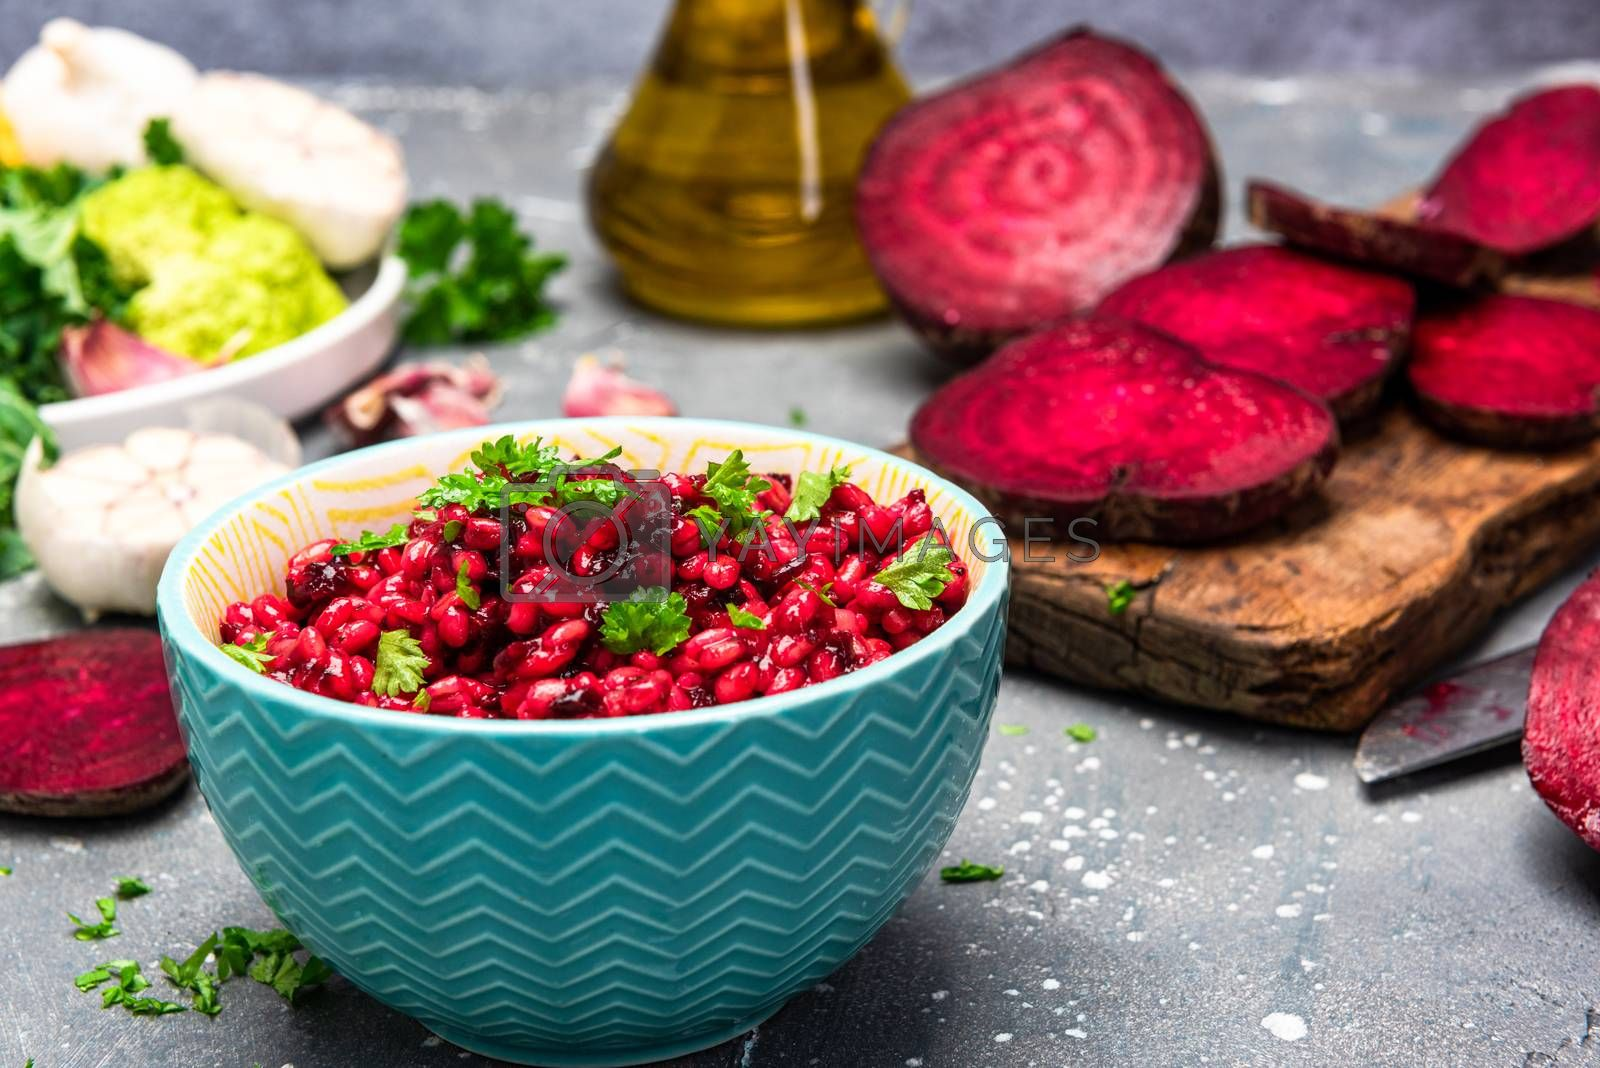 Healthy Brunch in Bowl. Groats and Beetroot Risotto. Green Diet. Plant Based Food. Healthy Living.